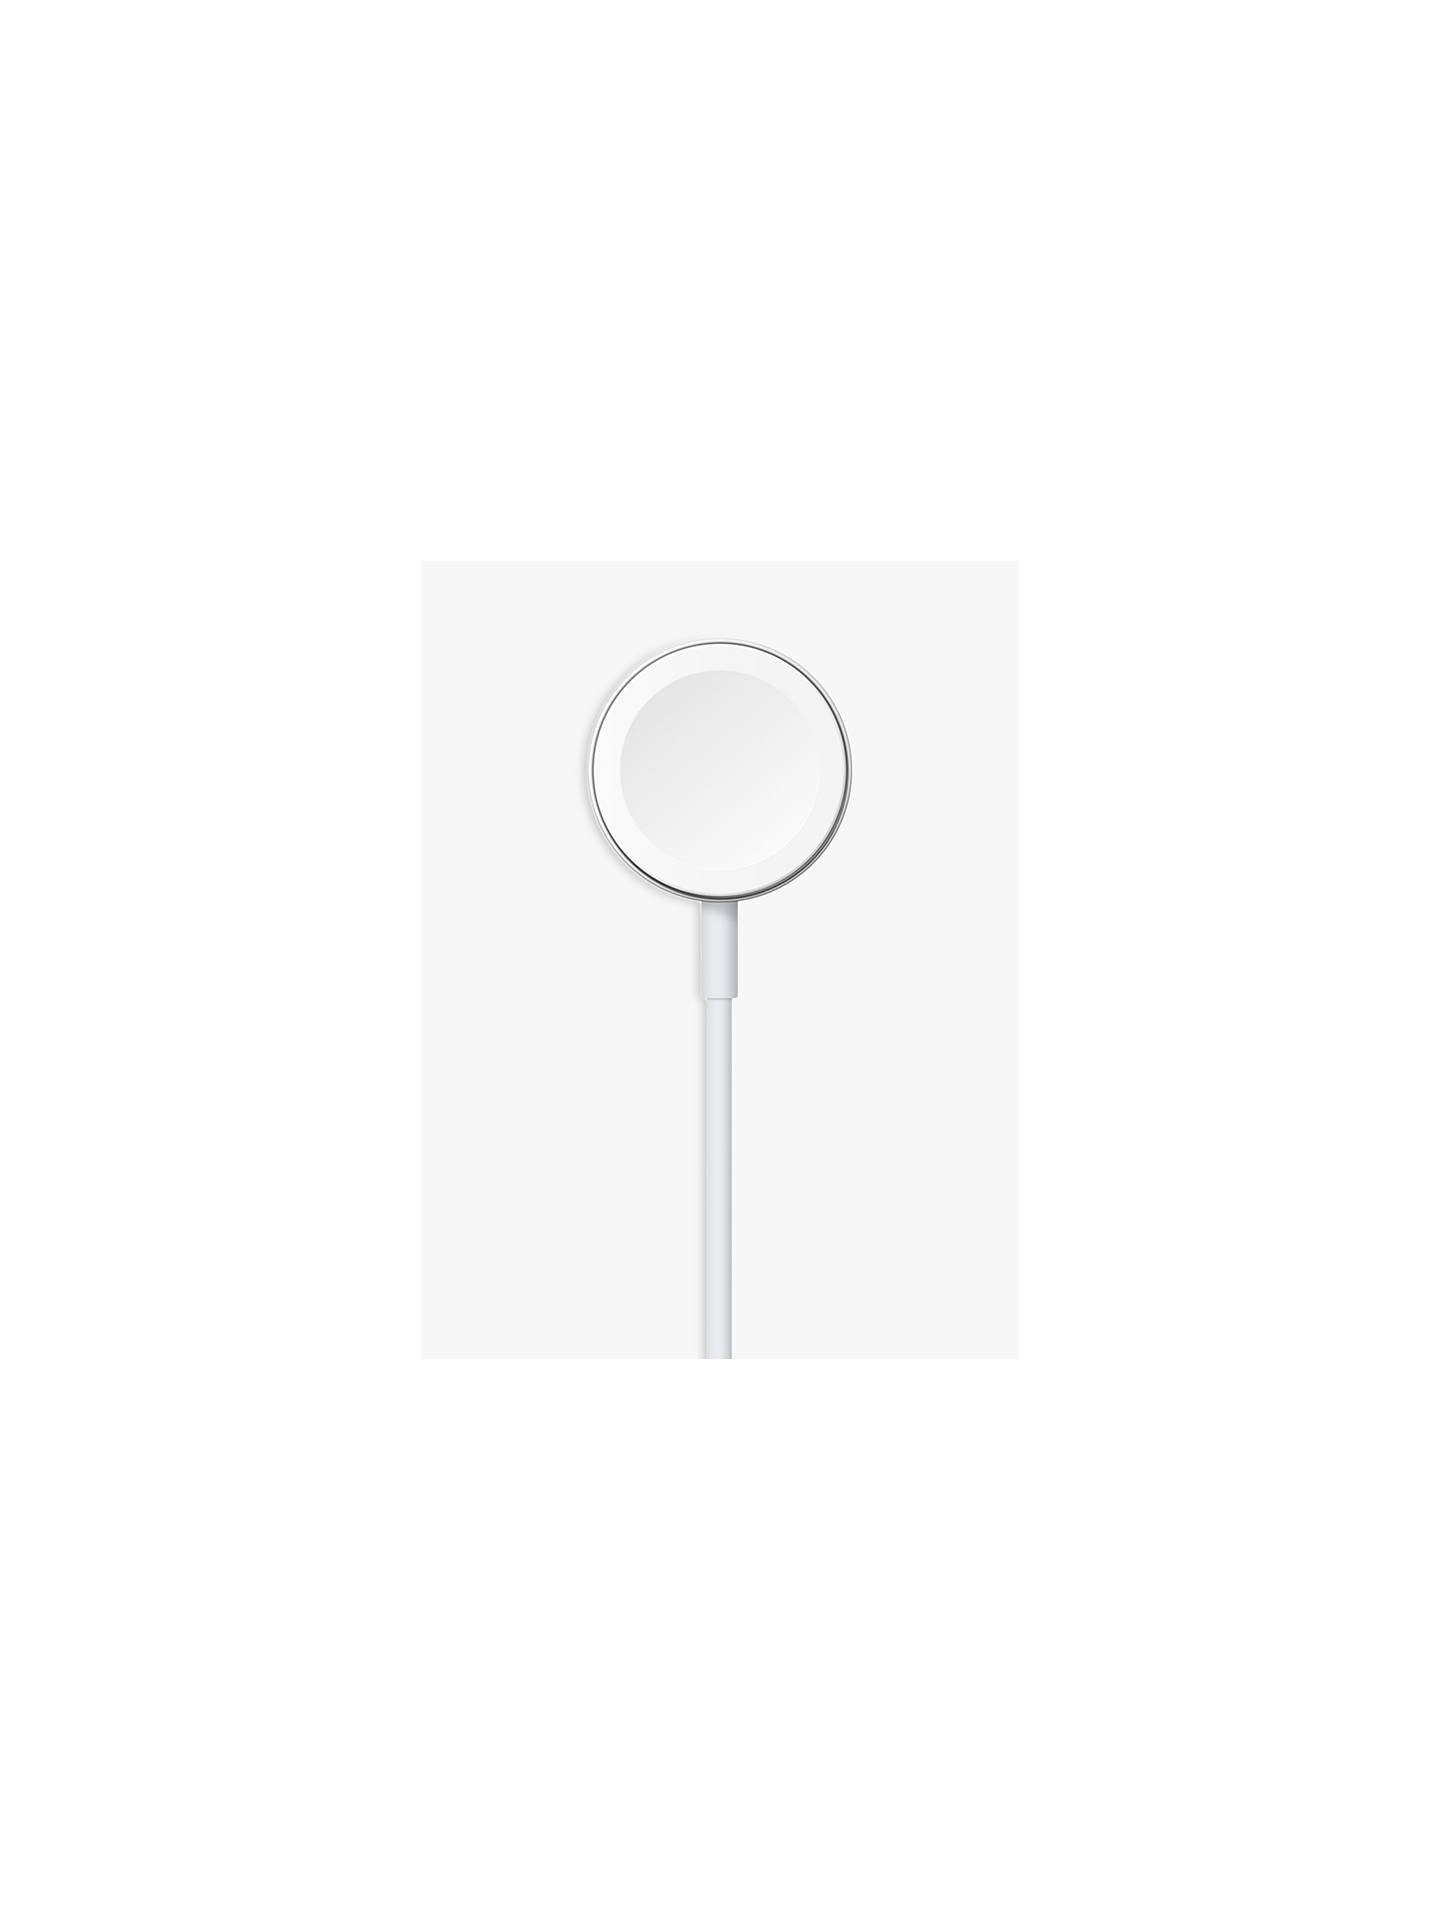 BuyApple Watch Magnetic Charging Cable, 0.3m Online at johnlewis.com